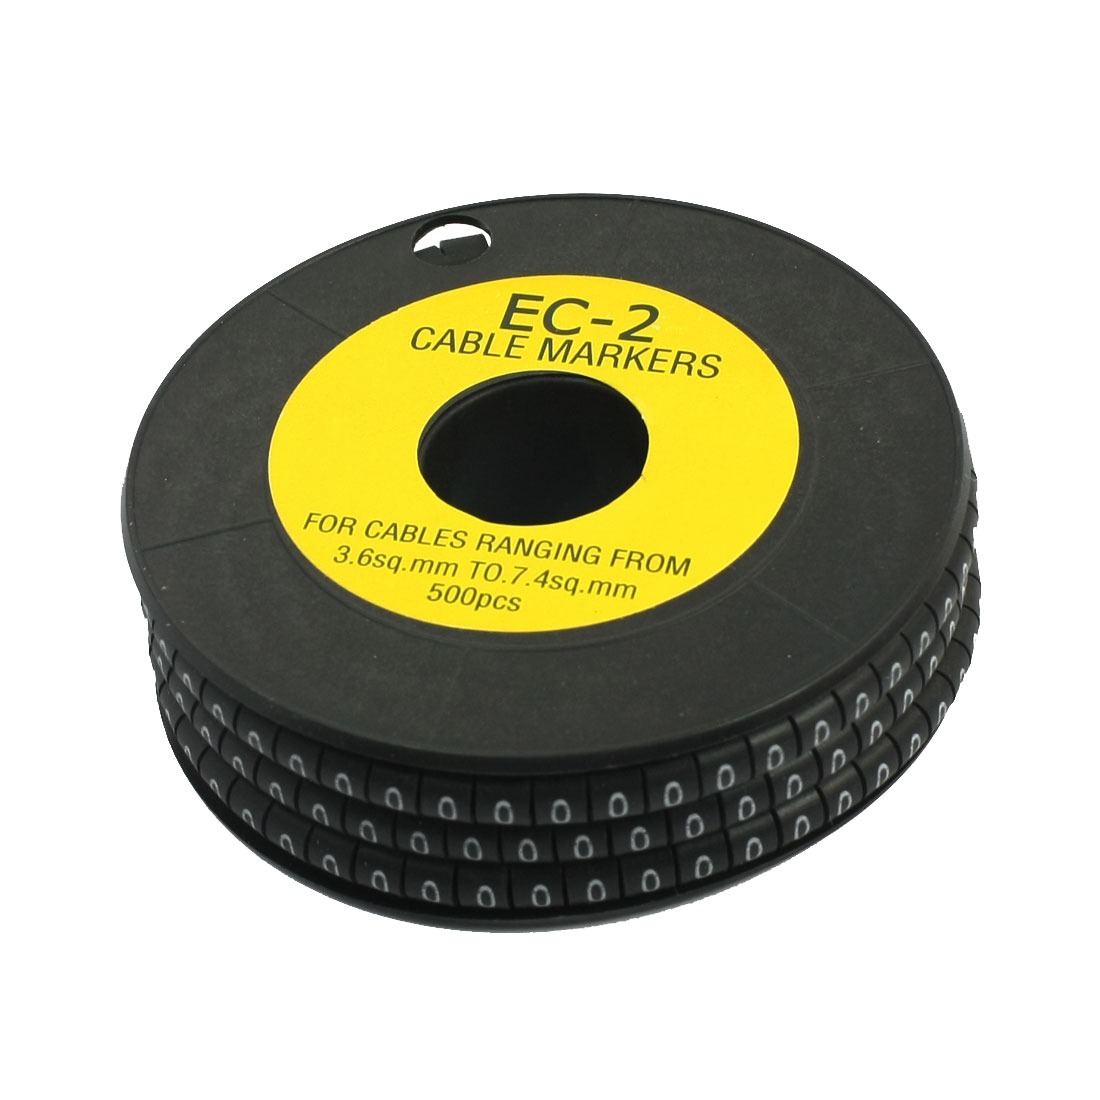 500Pcs EC-2 Arabic Numeral 0 Print Black Flexible PVC Concave Shape Wire Cable Markers Roll for 3.6-7.4mm2 Tube Label